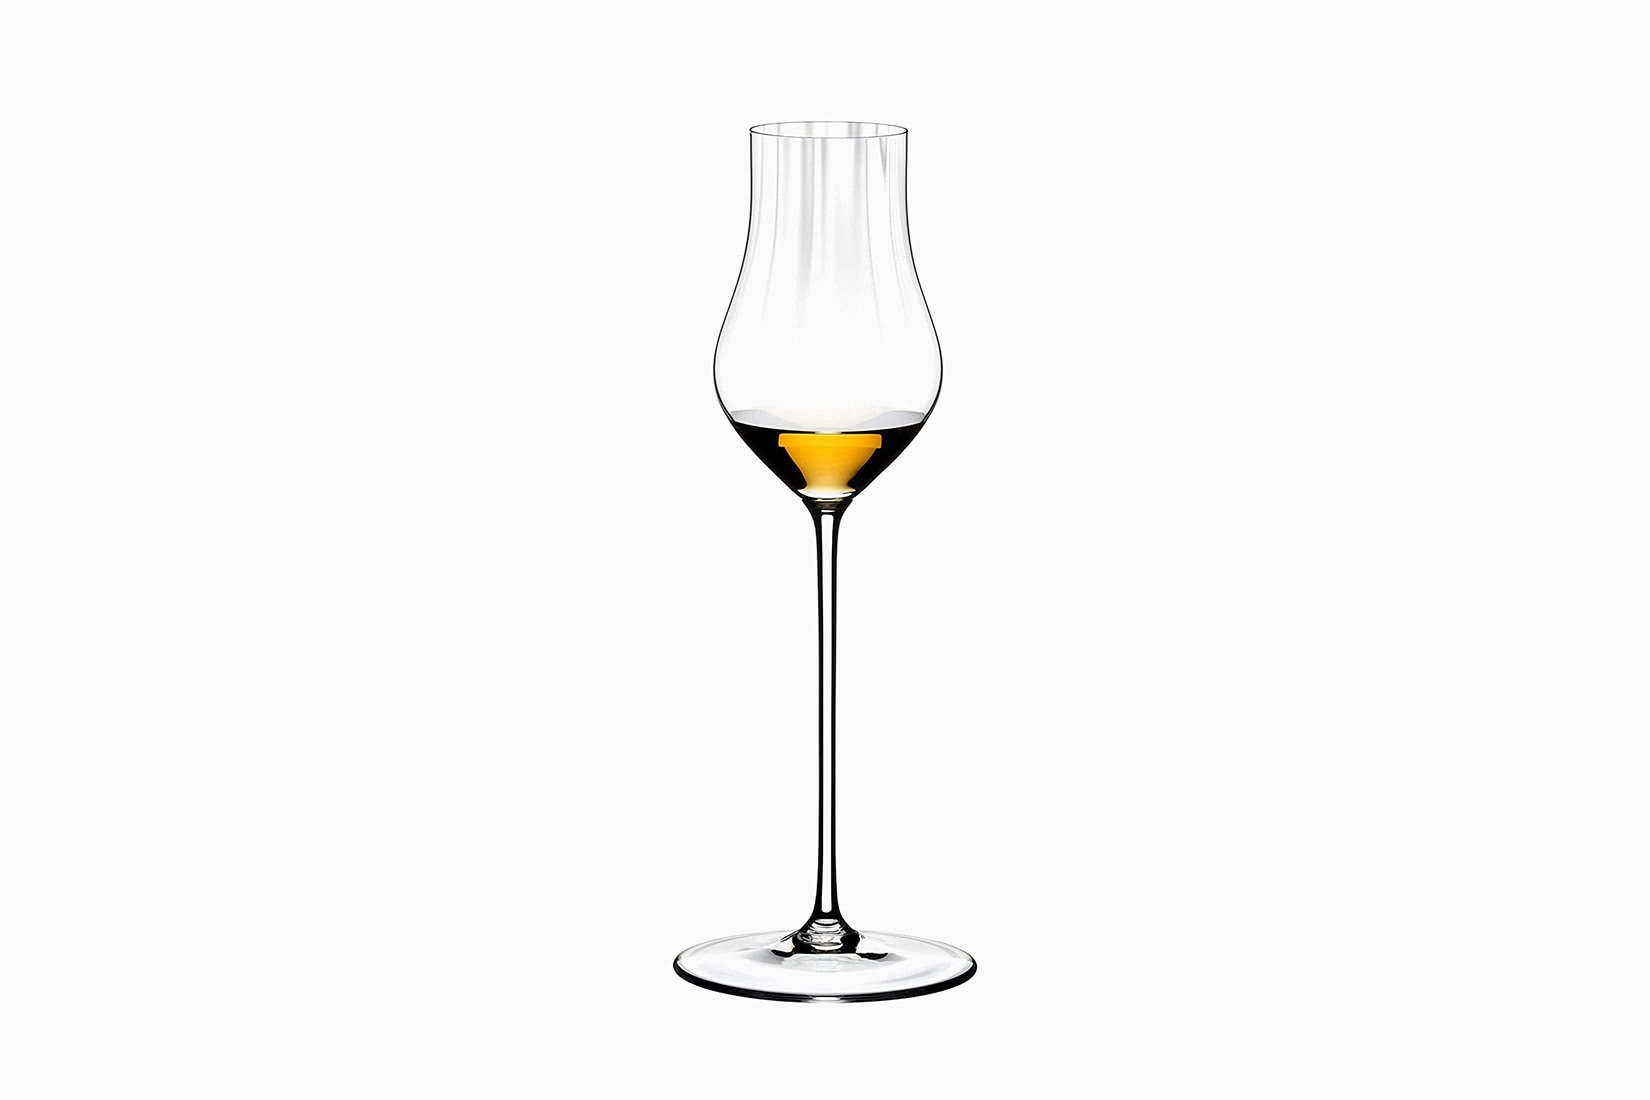 best whisky glass riedel performance - Luxe Digital